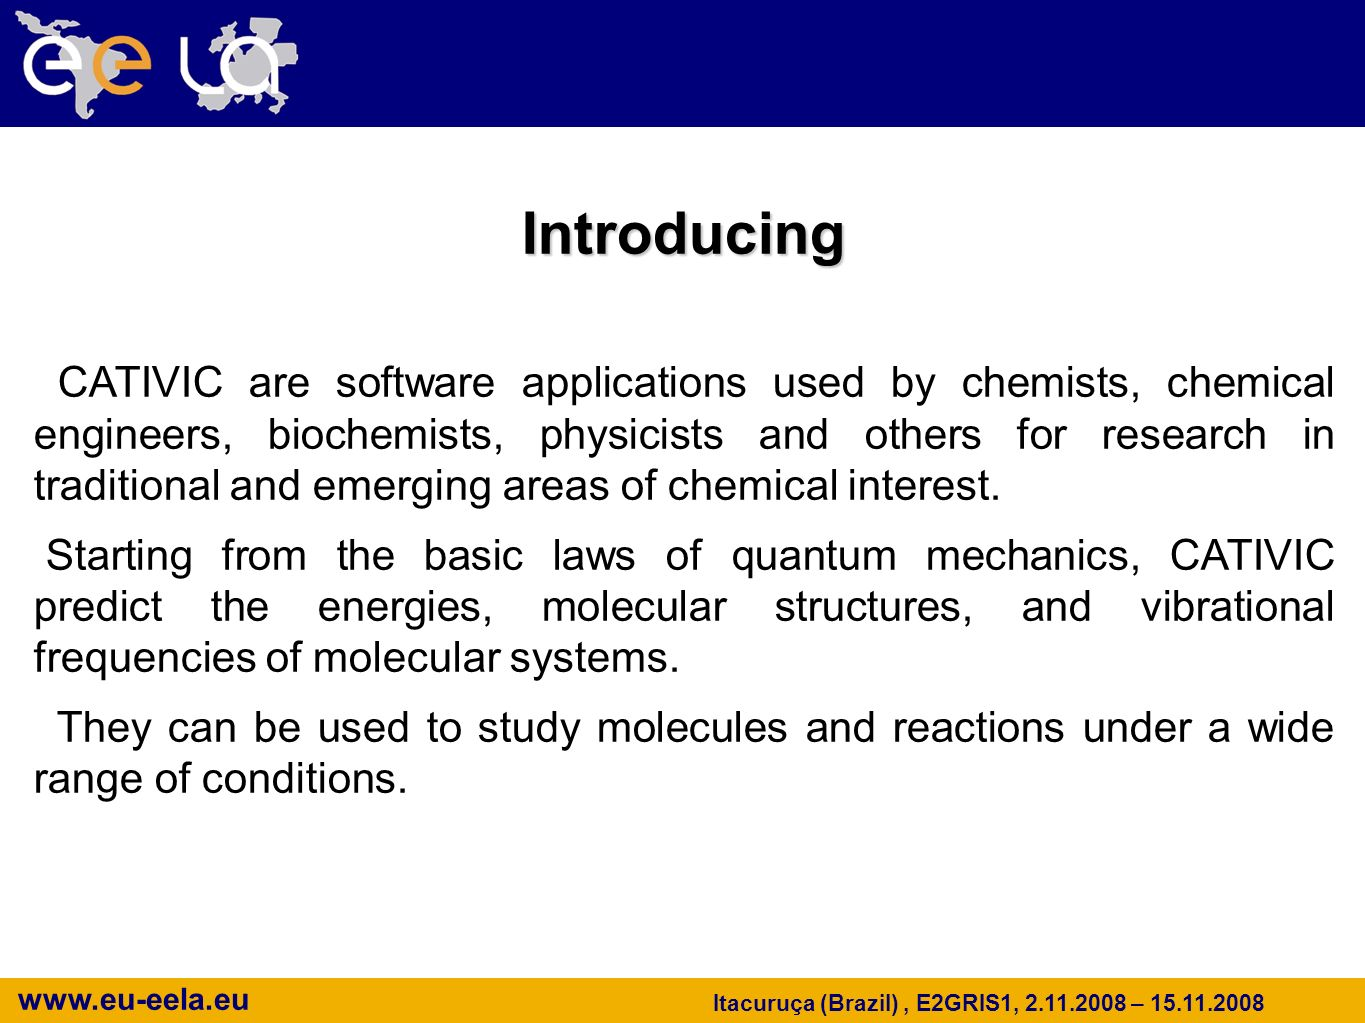 www.eu-eela.eu Itacuruça (Brazil), E2GRIS1, 2.11.2008 – 15.11.2008 Introducing CATIVIC are software applications used by chemists, chemical engineers, biochemists, physicists and others for research in traditional and emerging areas of chemical interest.